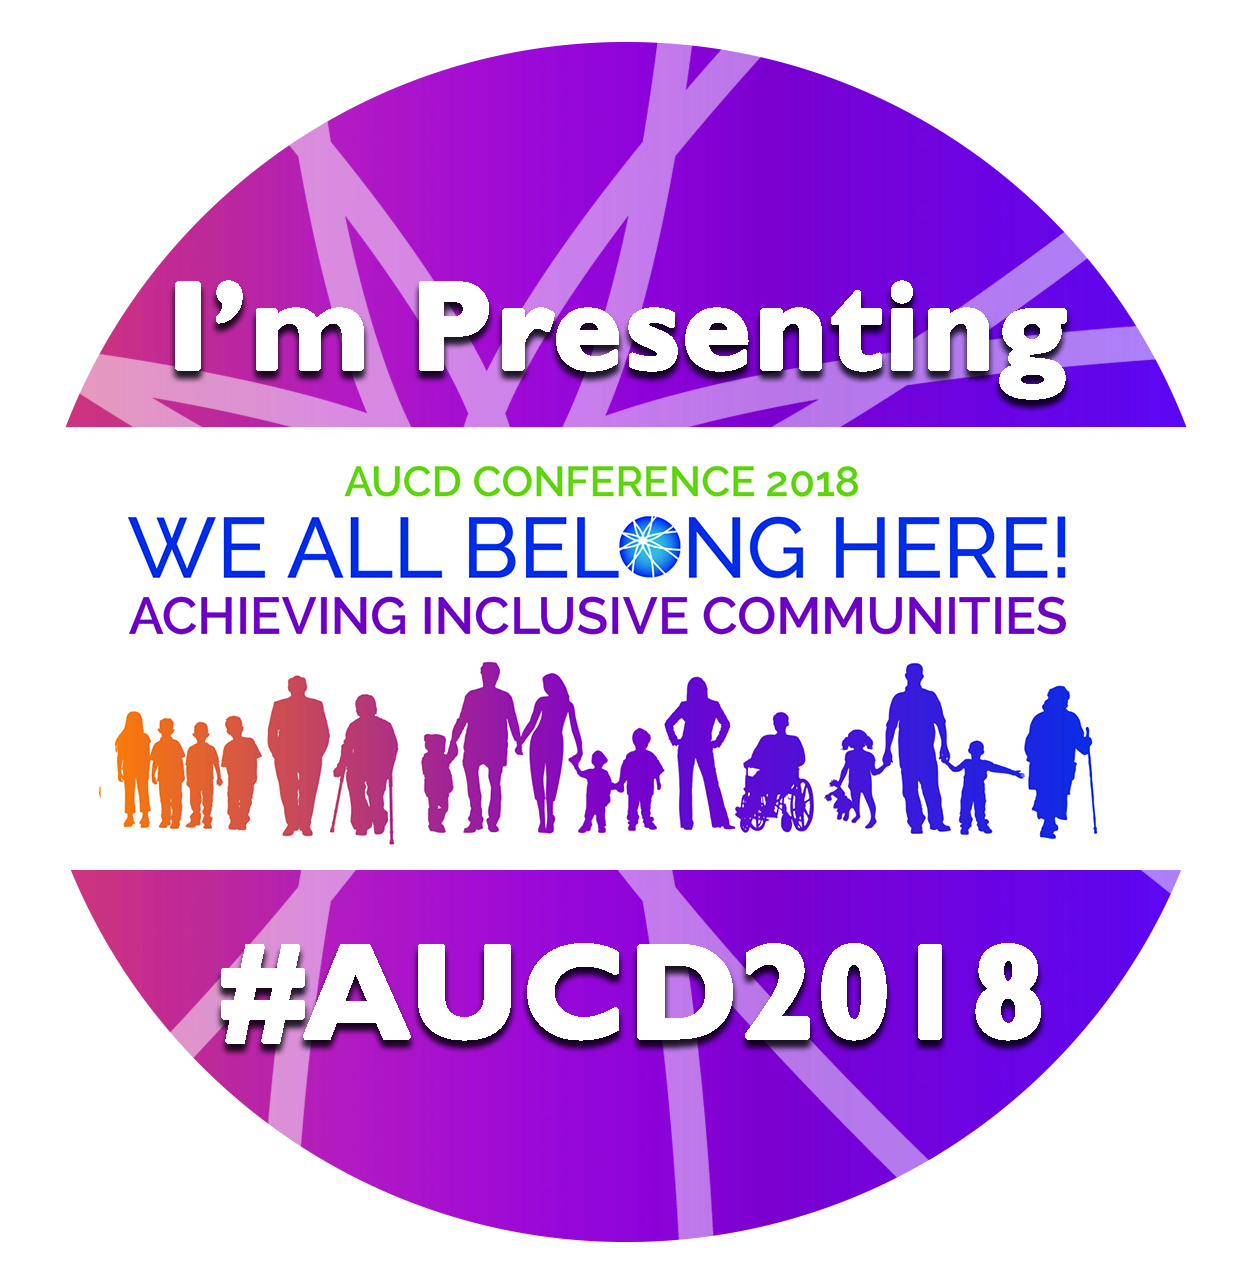 Round purple button says I'm Presenting at AUCD 2018